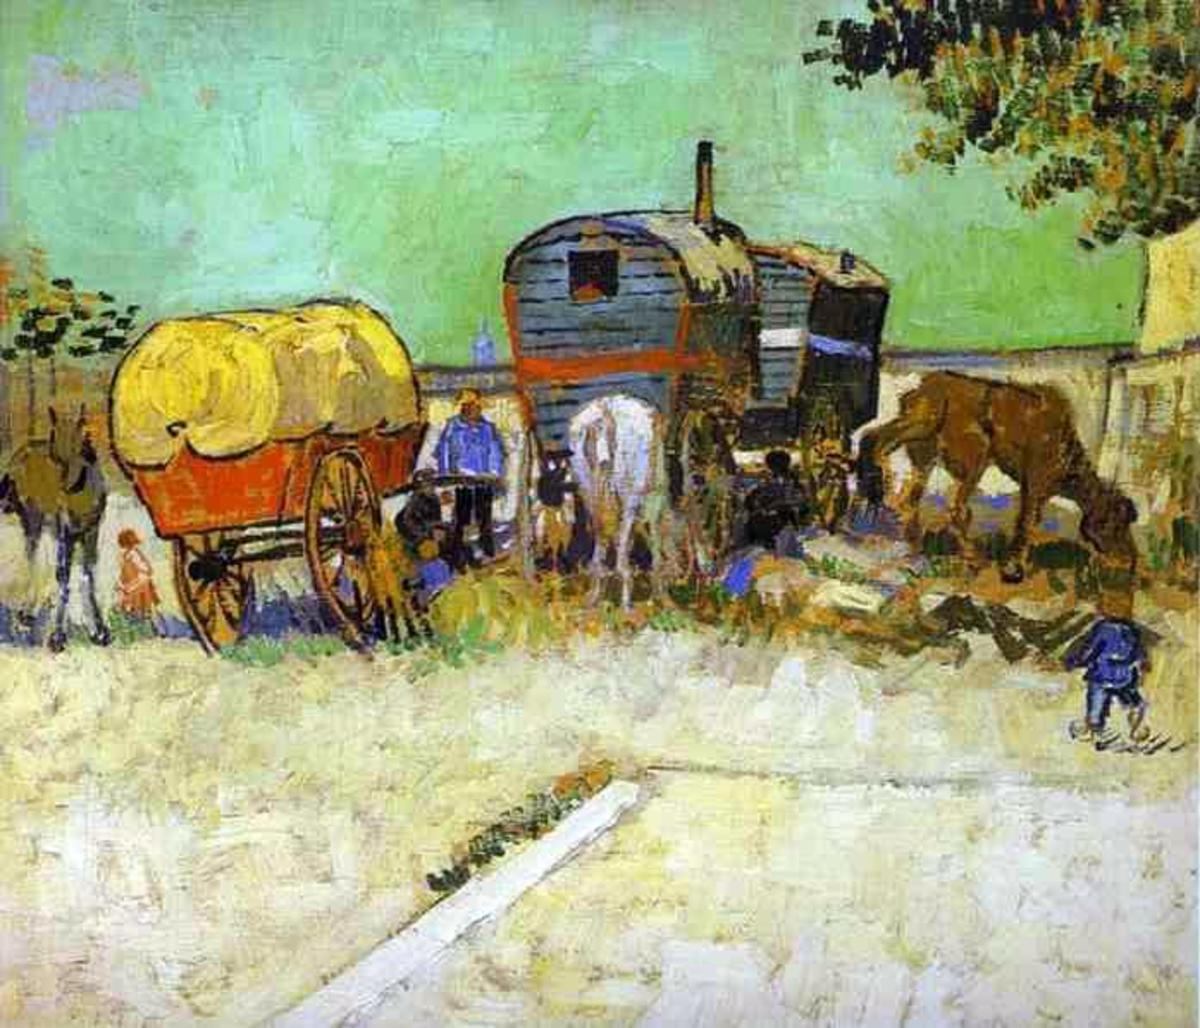 THE CARAVANS - GYPSY CAMP NEAR ARLES (PAINTING BY VINCENT VAN GOGH)